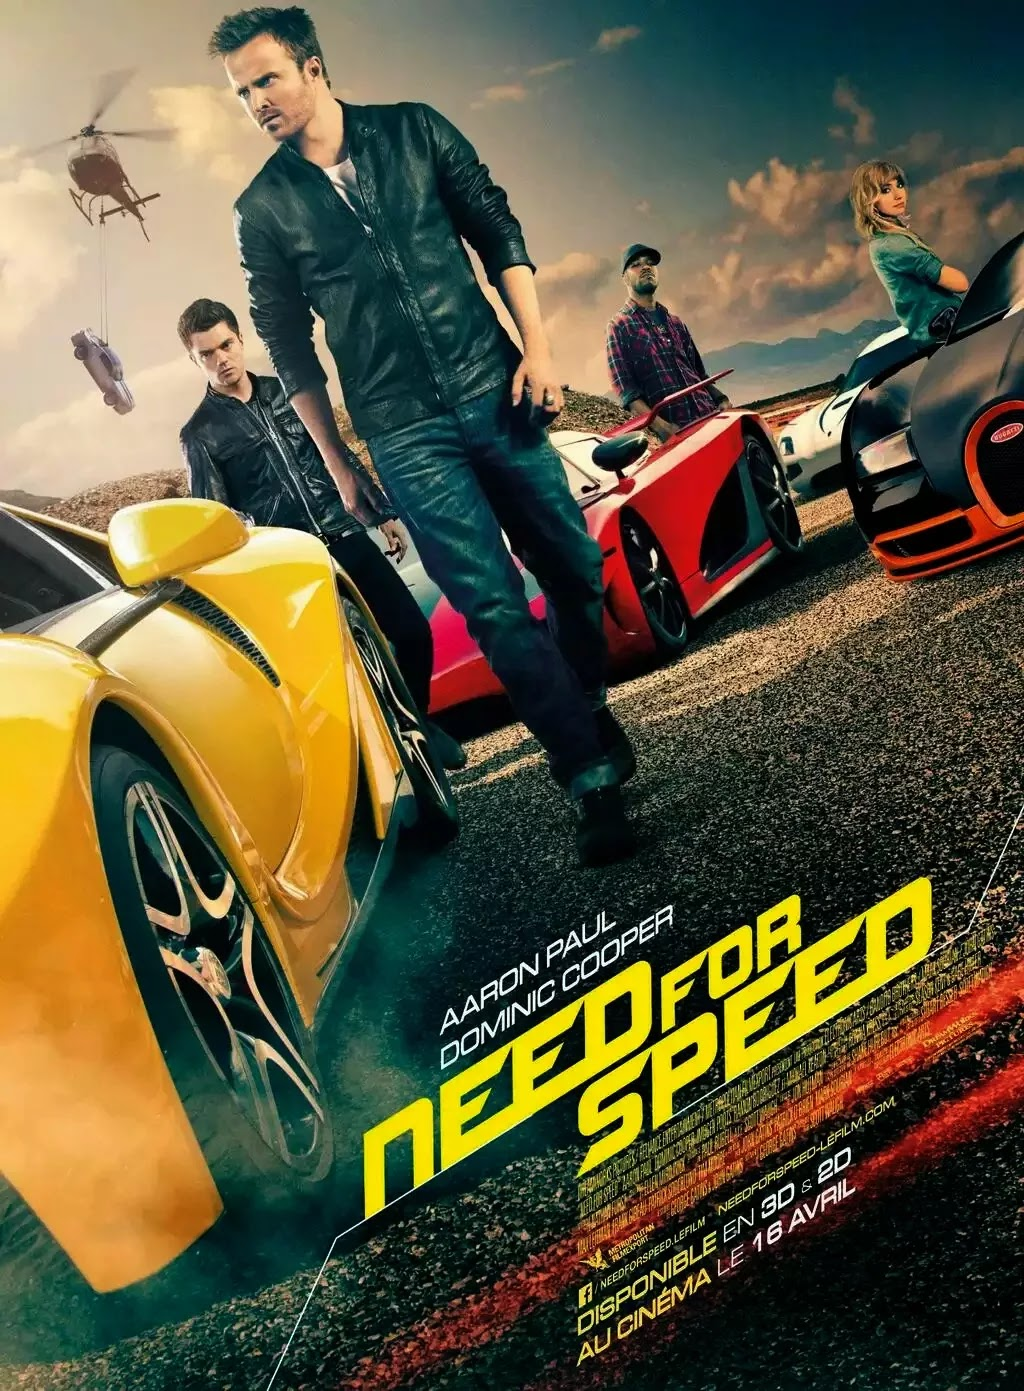 NFS (Need for speed)